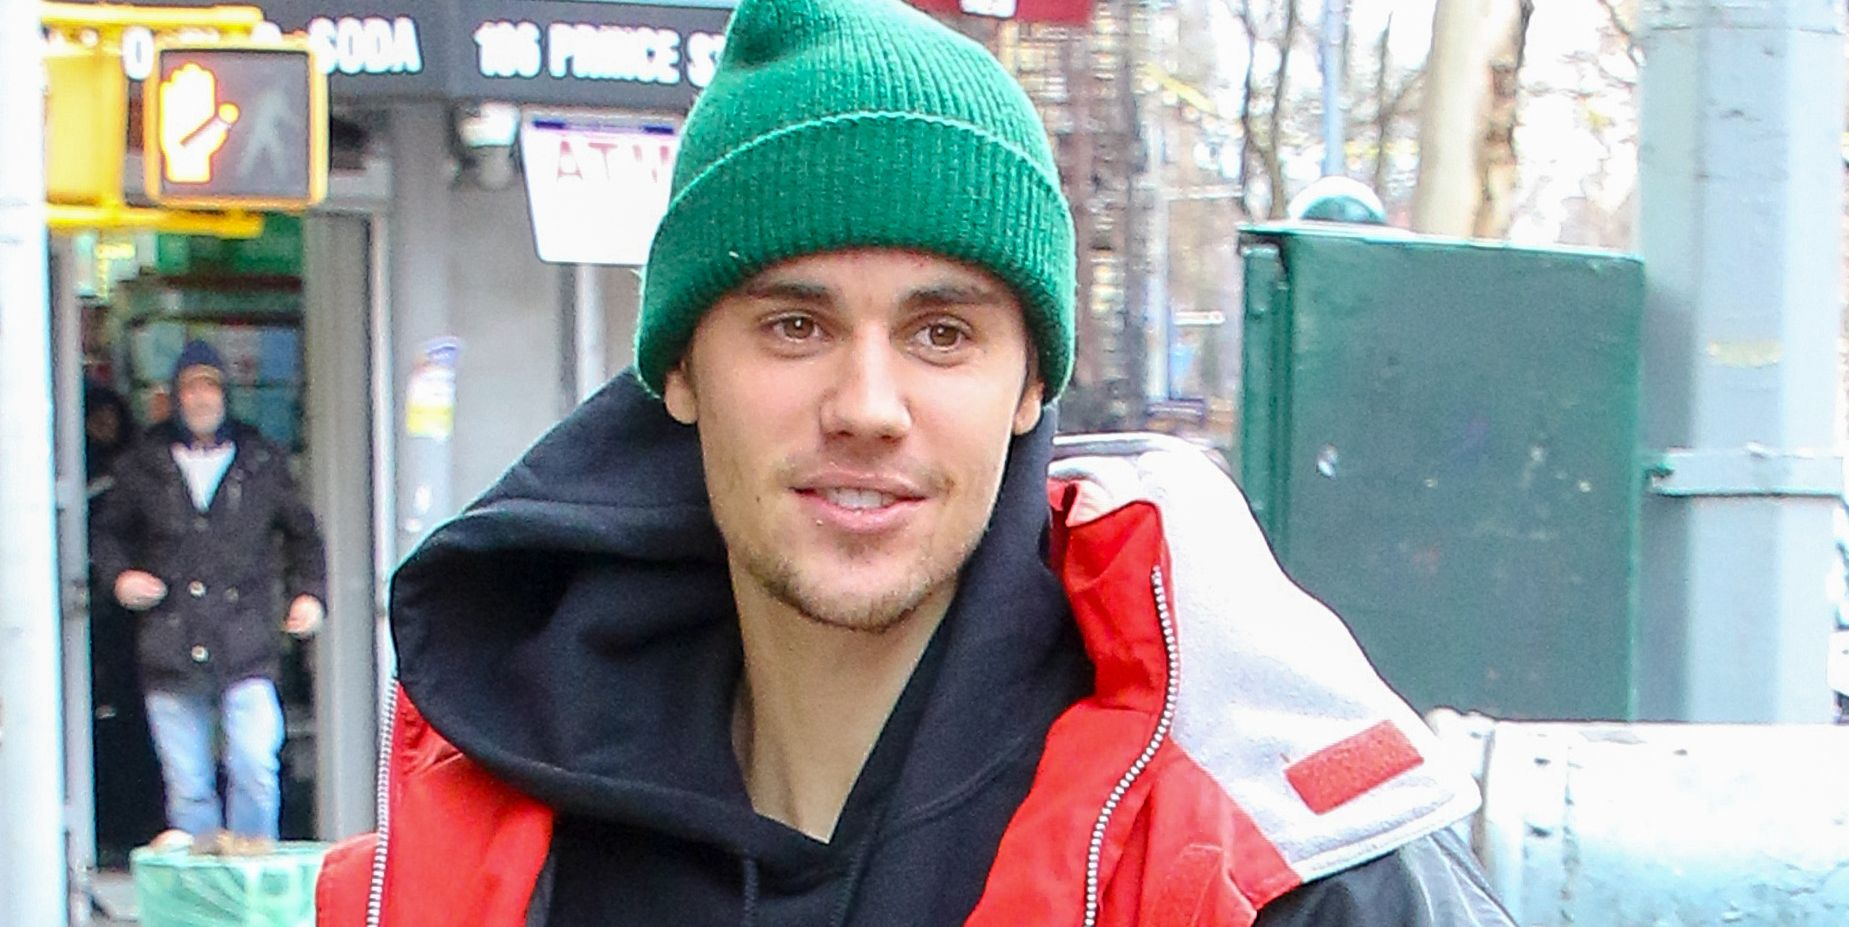 Why Justin Bieber Is Seeking Treatment for Depression